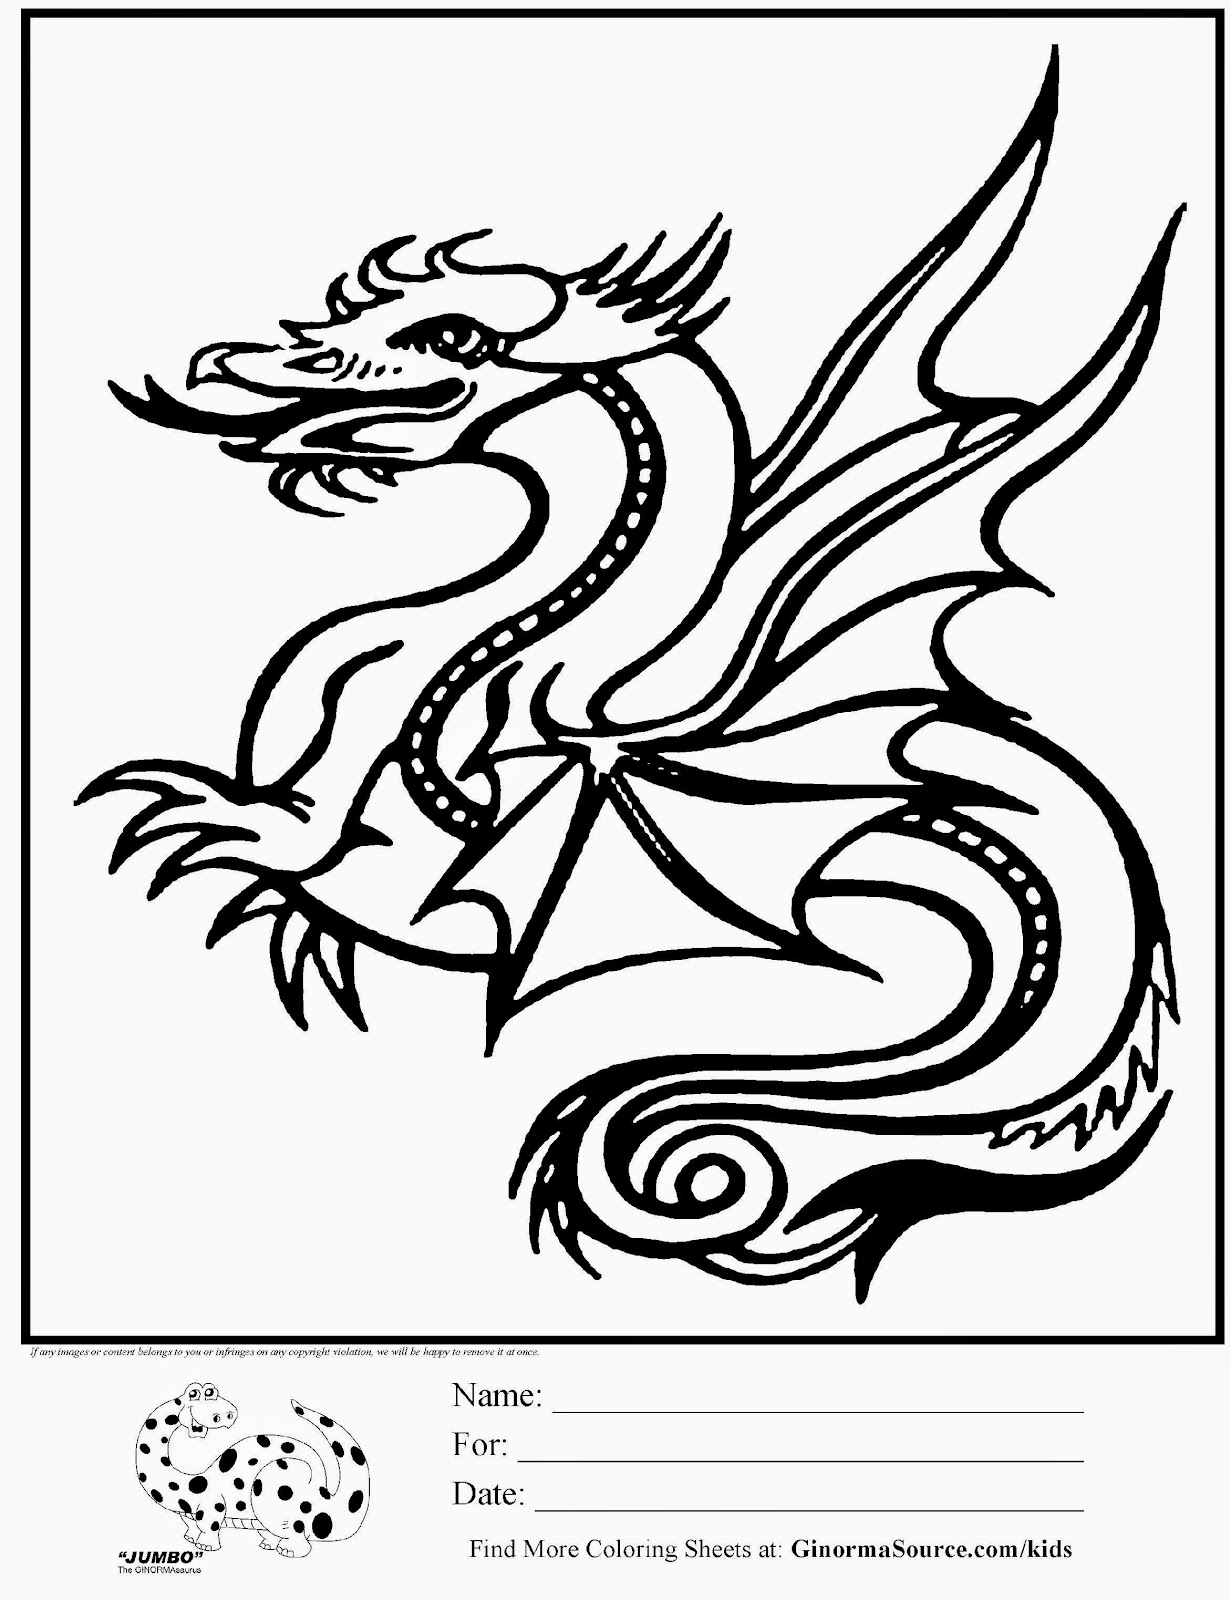 Printable coloring pages awesome name -  Printable Colouring Pages For Adults Awesome Coloring Pages For Boys Awesome Coloring Pages